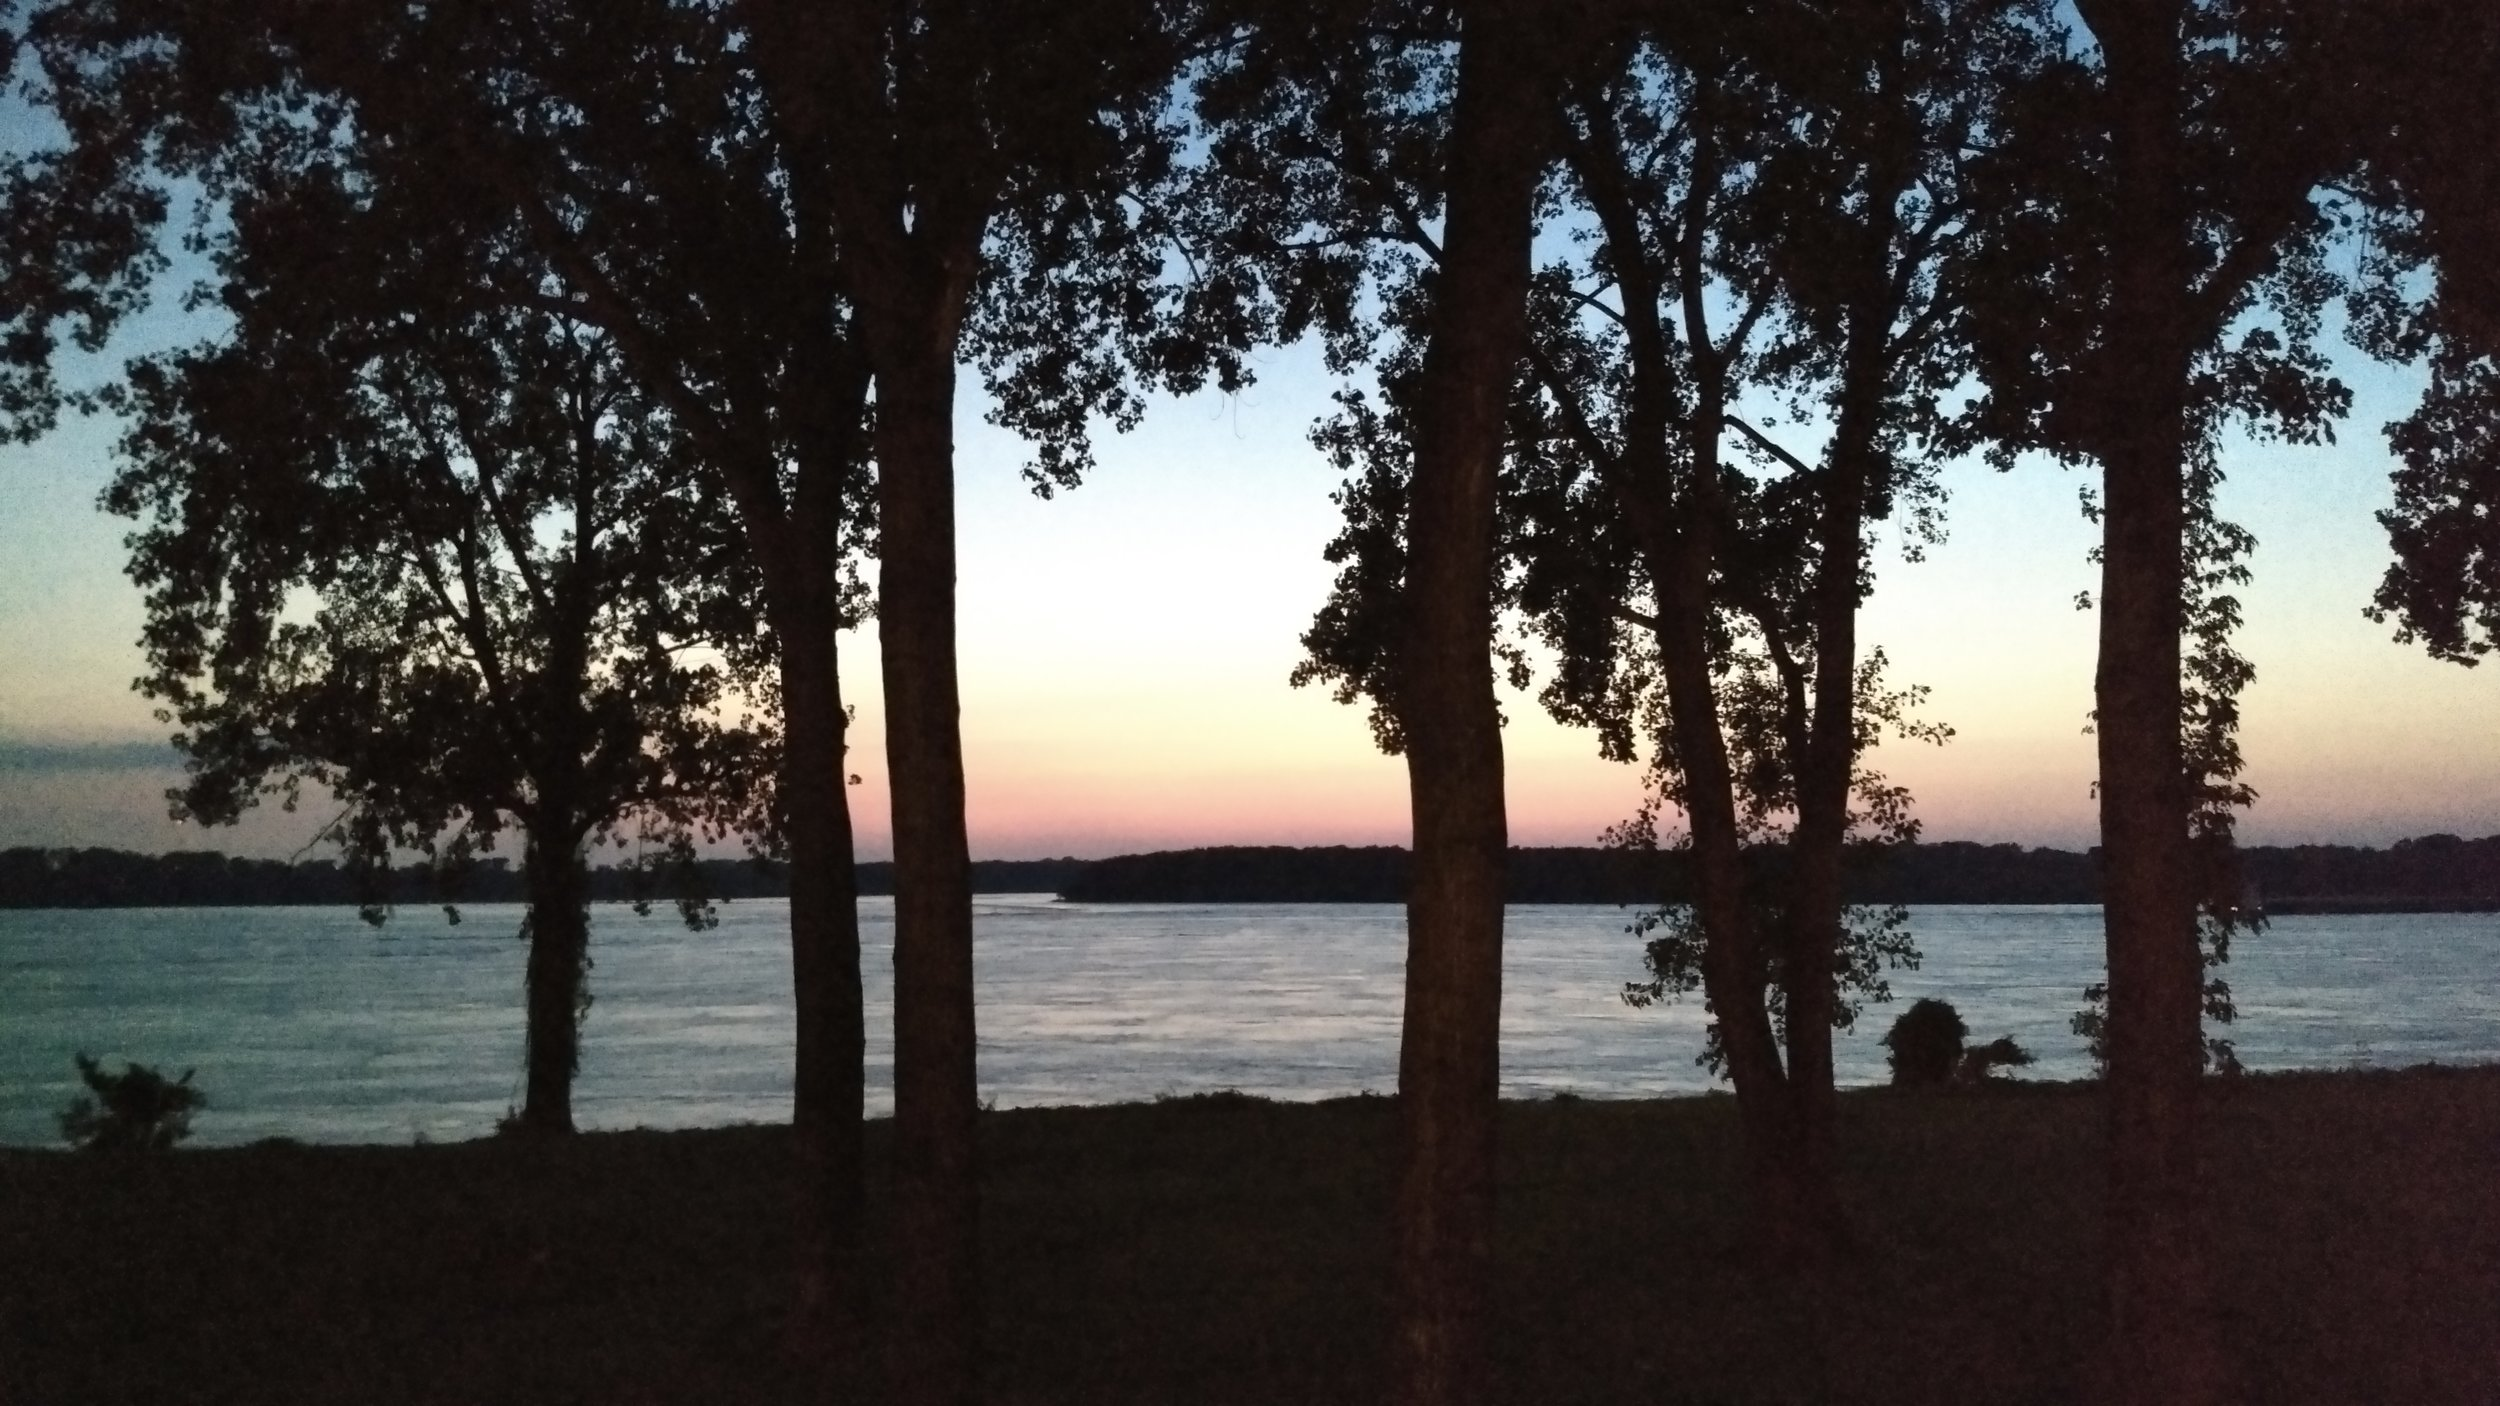 On the banks of the Mississippi